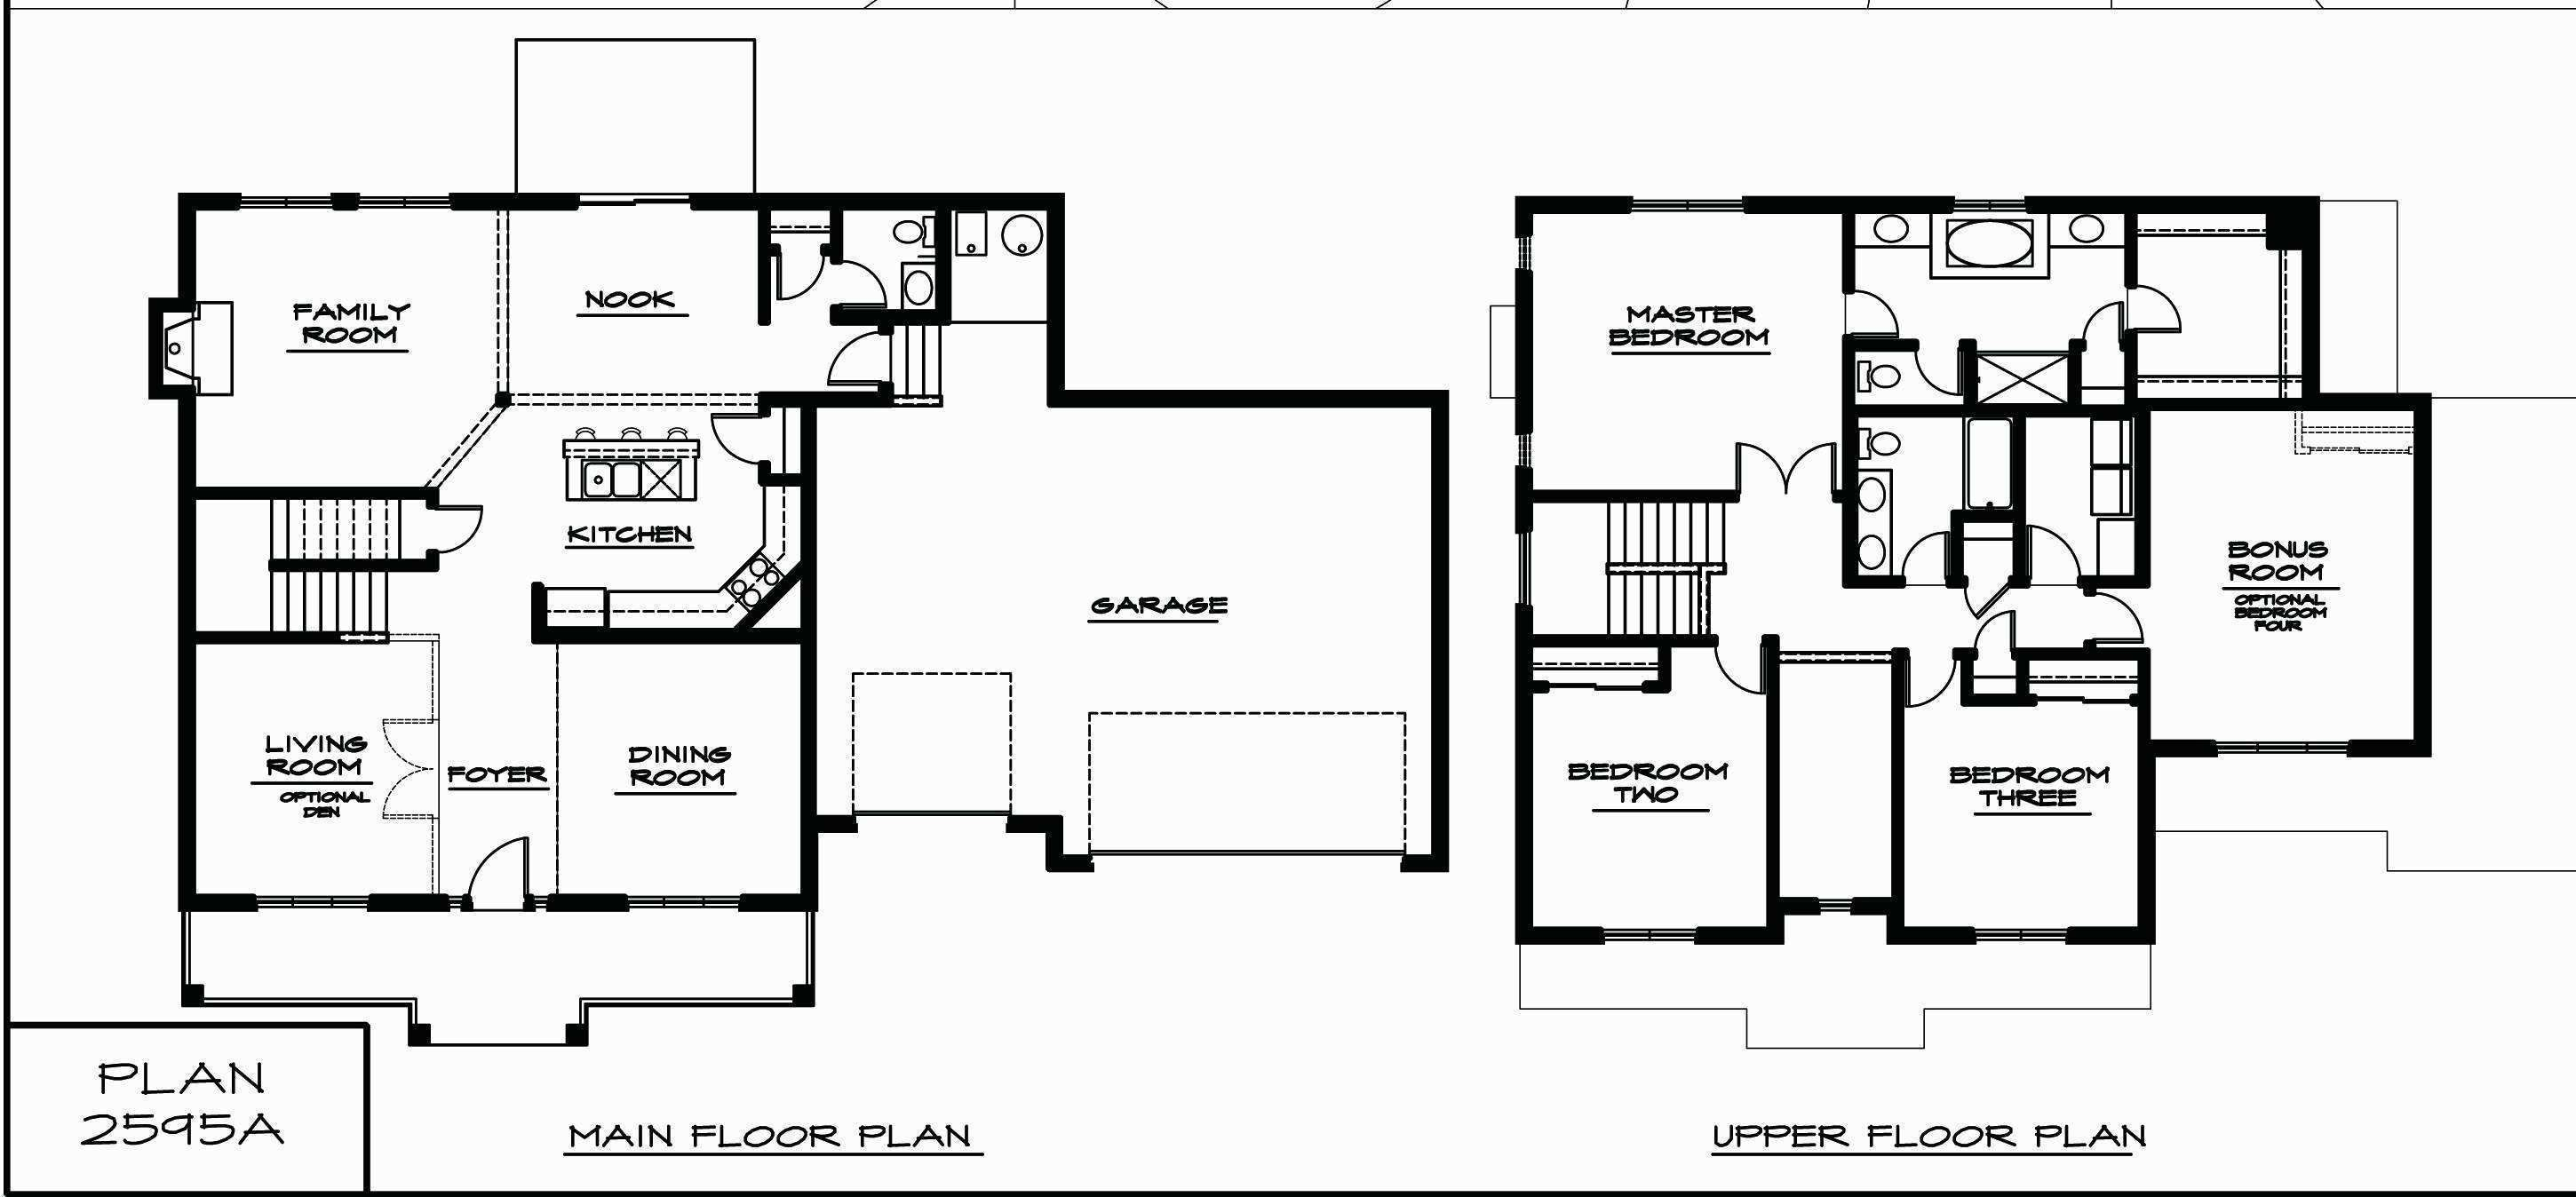 42 Rectangular House Floor Plans Fdl Planner Single Storey House Plans Garage House Plans House Plans With Photos